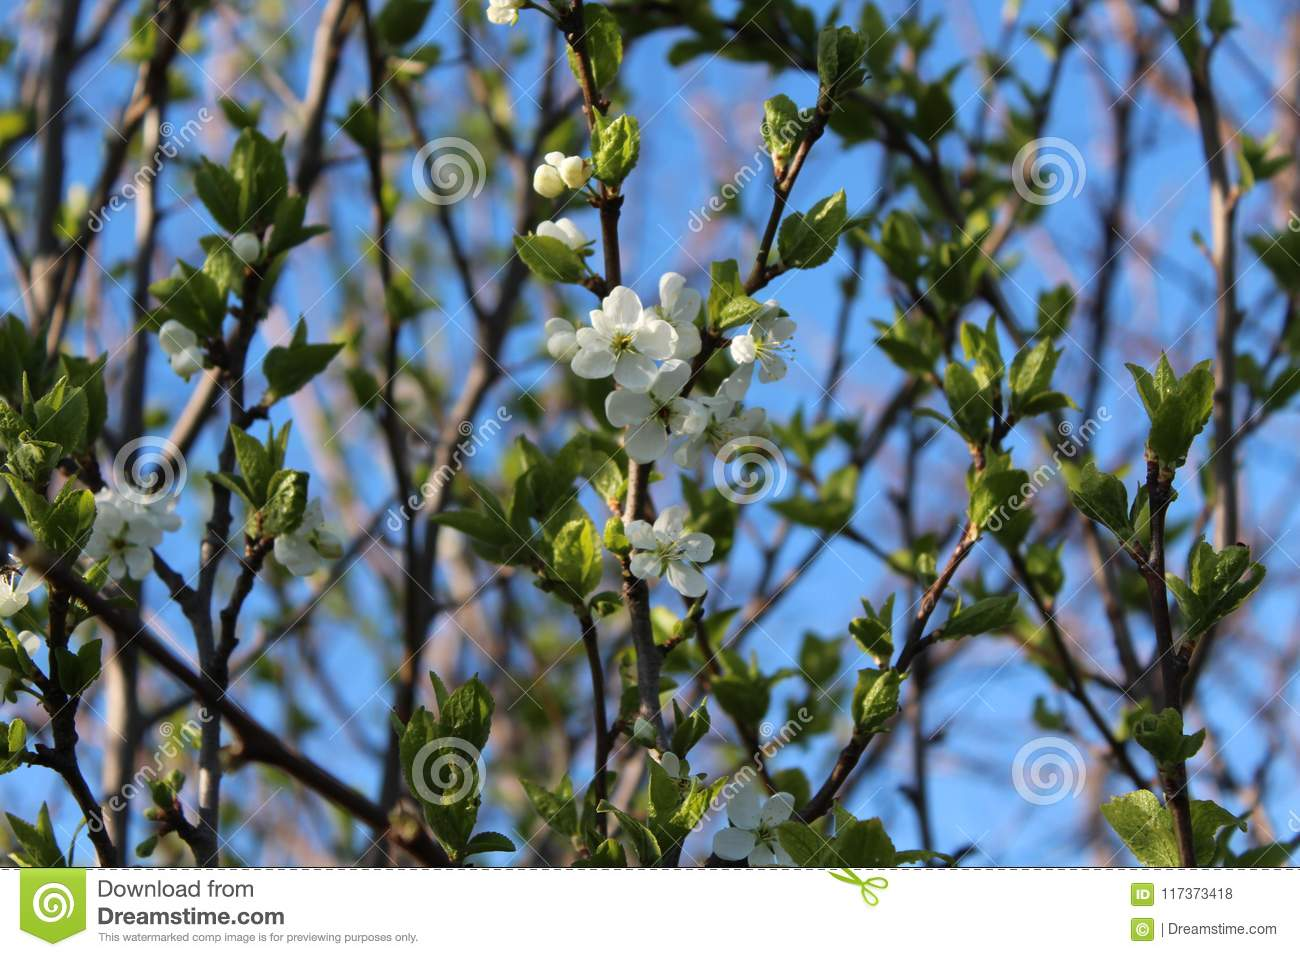 The trees blossomed white flowers spring came spring mood the the trees blossomed white flowers spring came spring mood the first leaves mightylinksfo